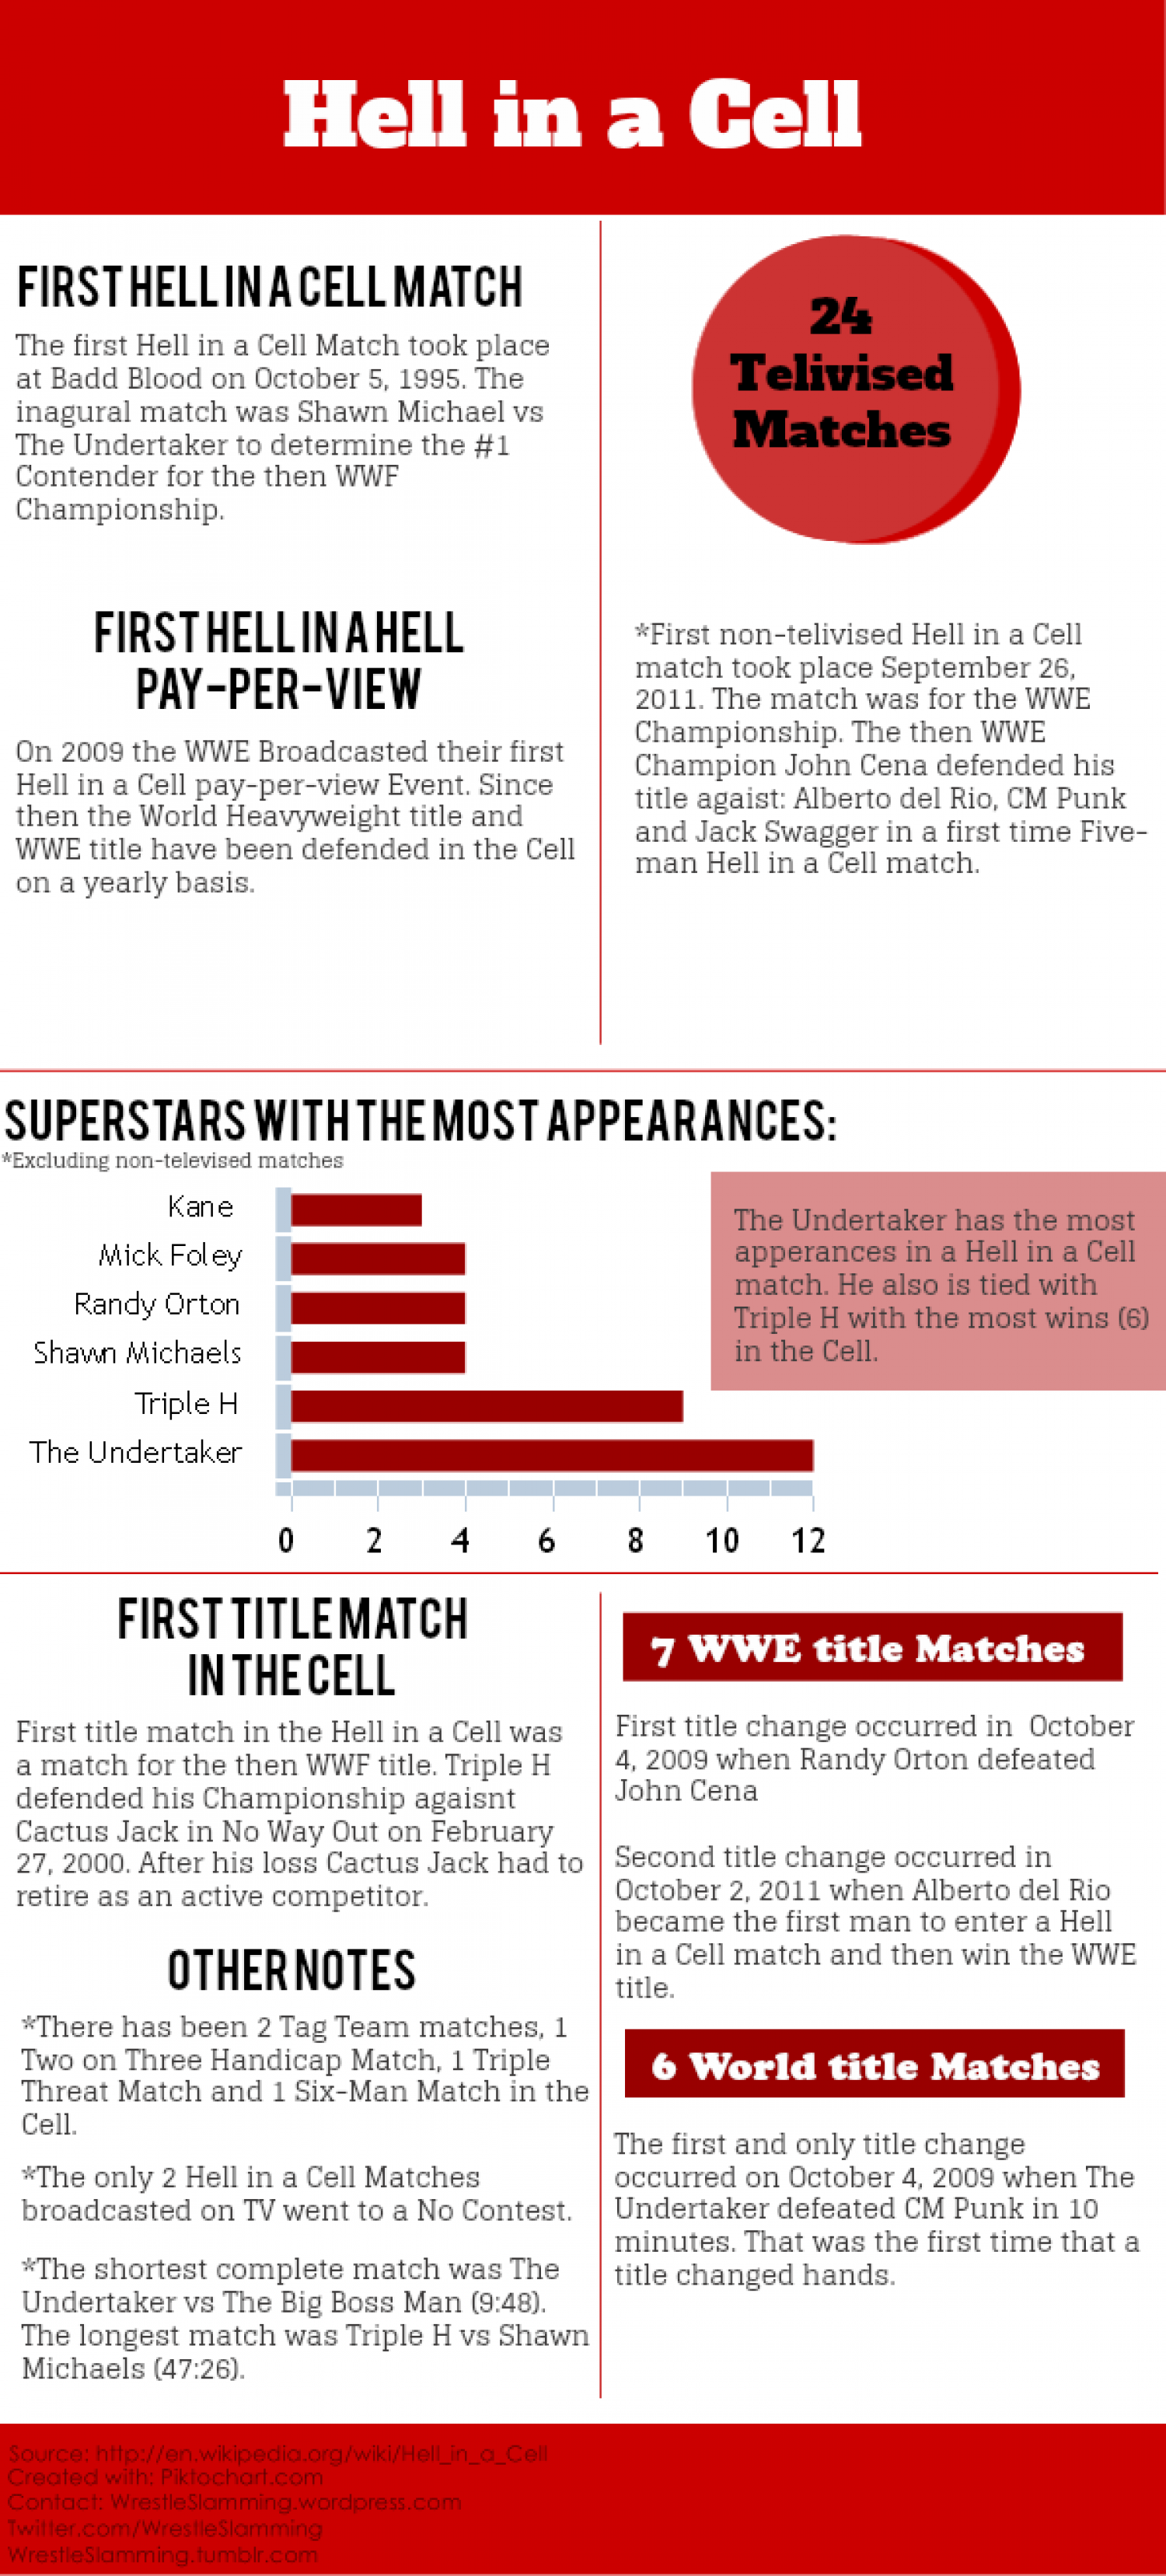 Hell in a Cell Stats Infographic